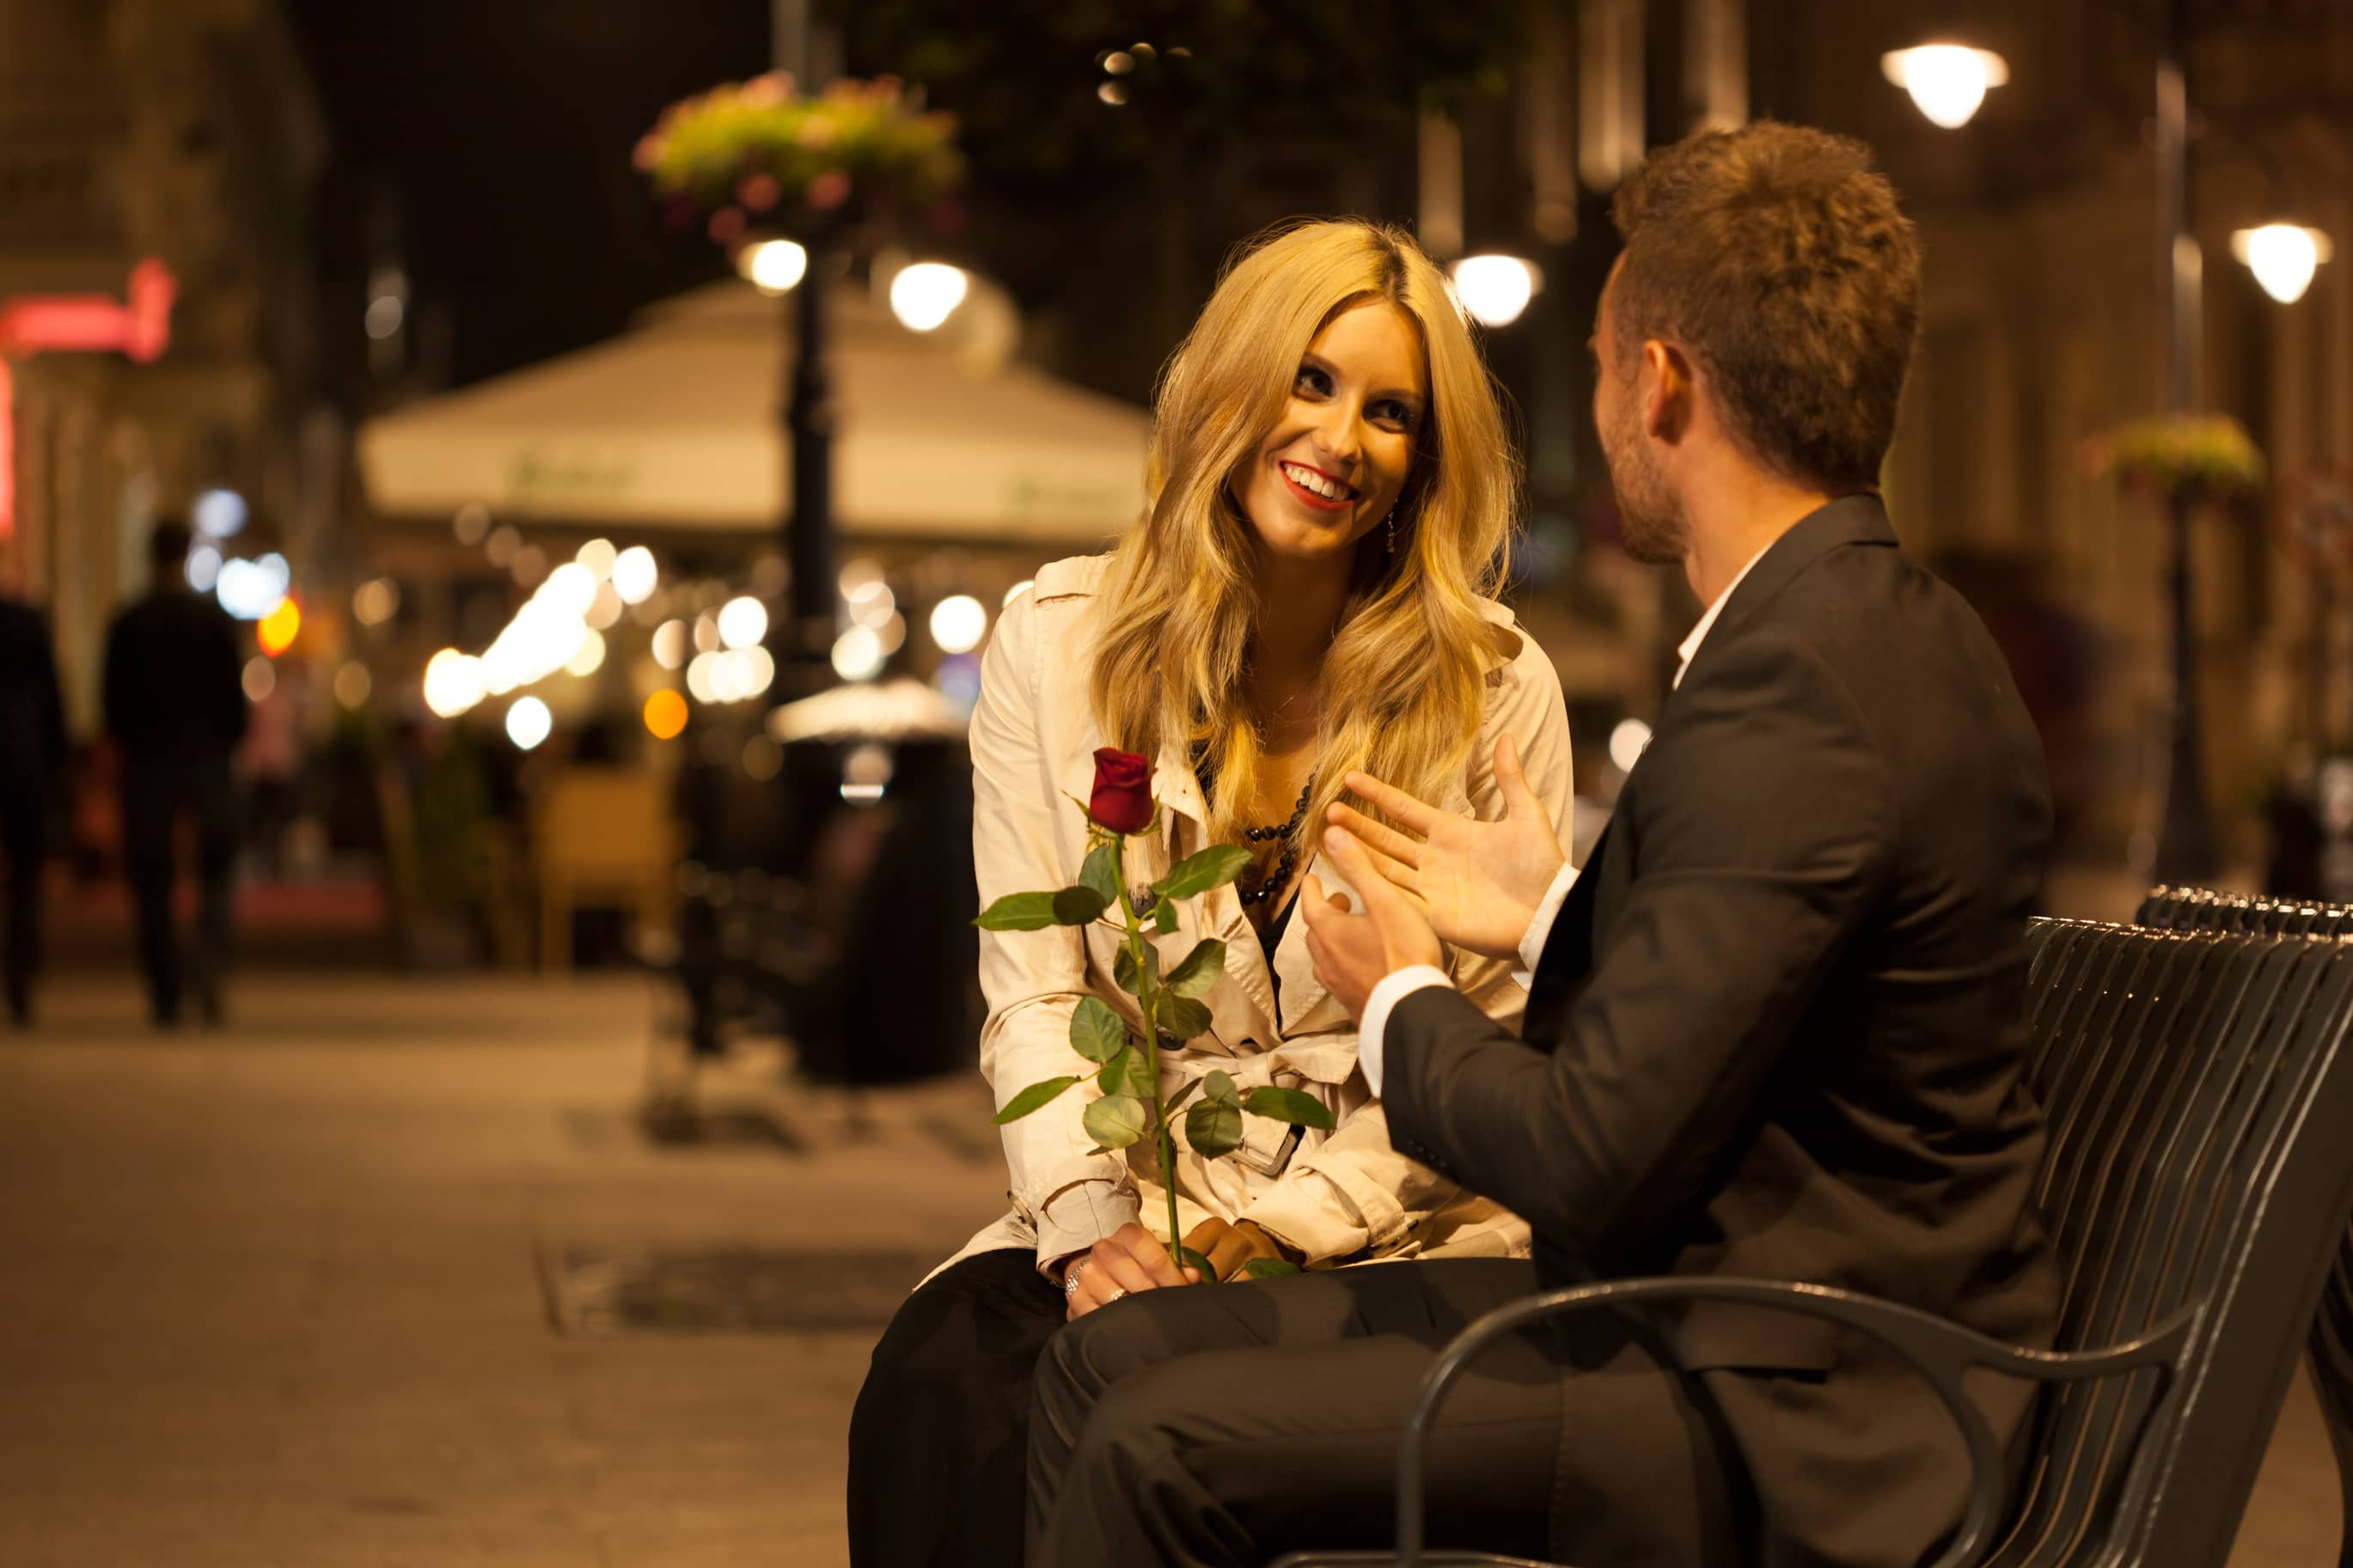 romantic dating gestures Any tips on dating a hopeless romantic update cancel  surprises, gestures,  special is a big part of being on the receiving end of dating a hopeless romantic.